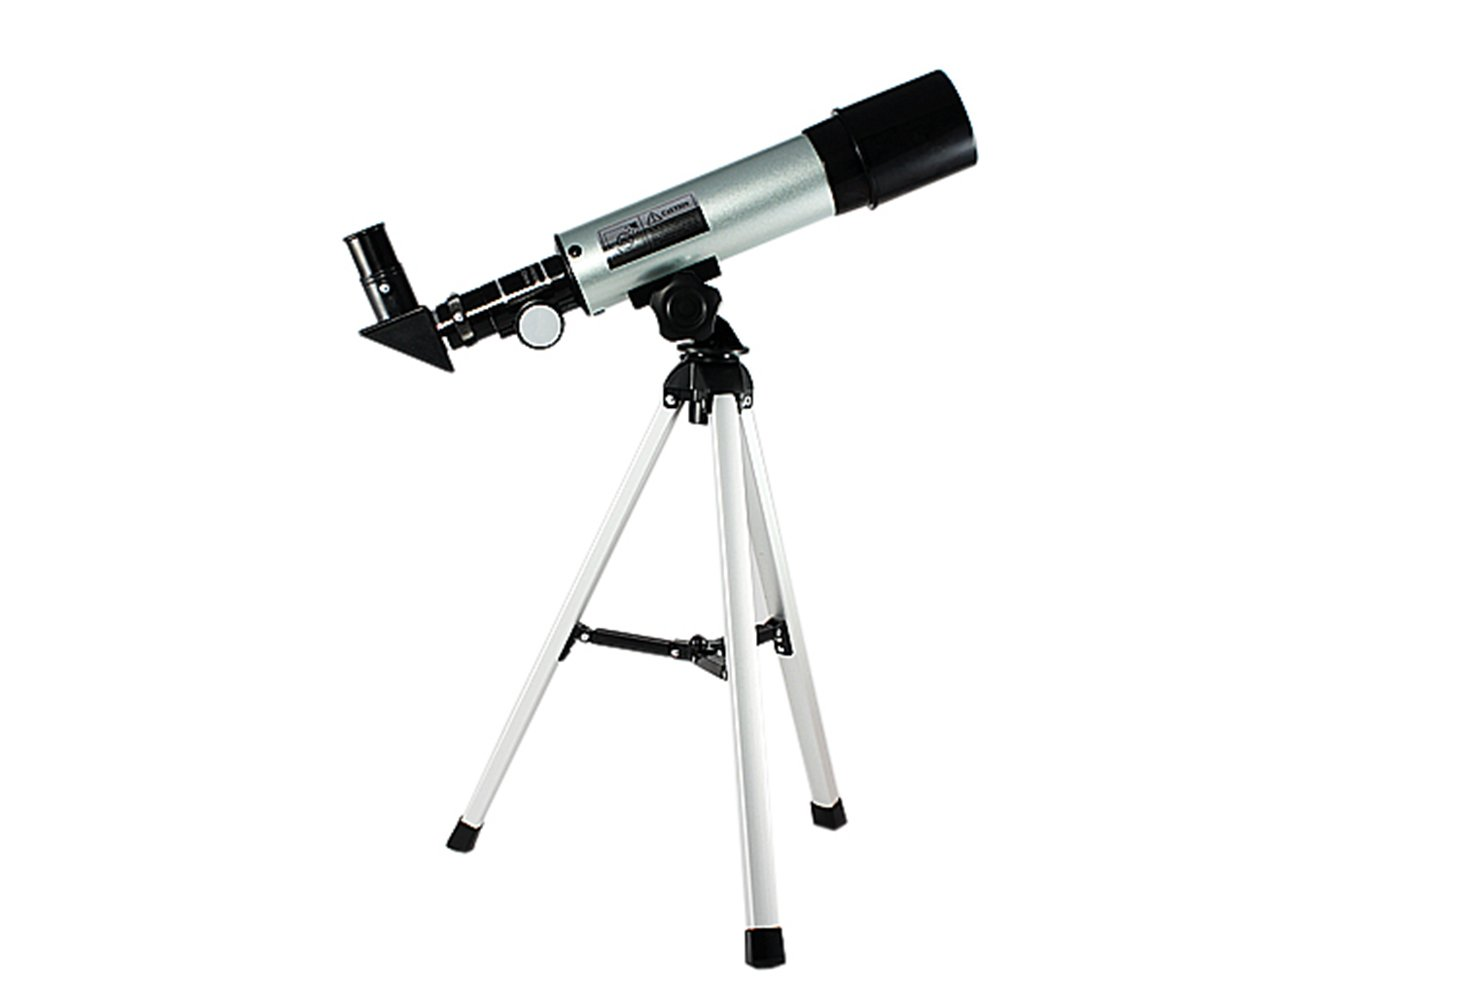 Telescope for Kids and Lunar Beginners, 90x Refractor, 360mm Focal Length, Kids Telescope for Exploring The Moon and Its Craters, Portable Telescope for Children and Beginners by Moonee